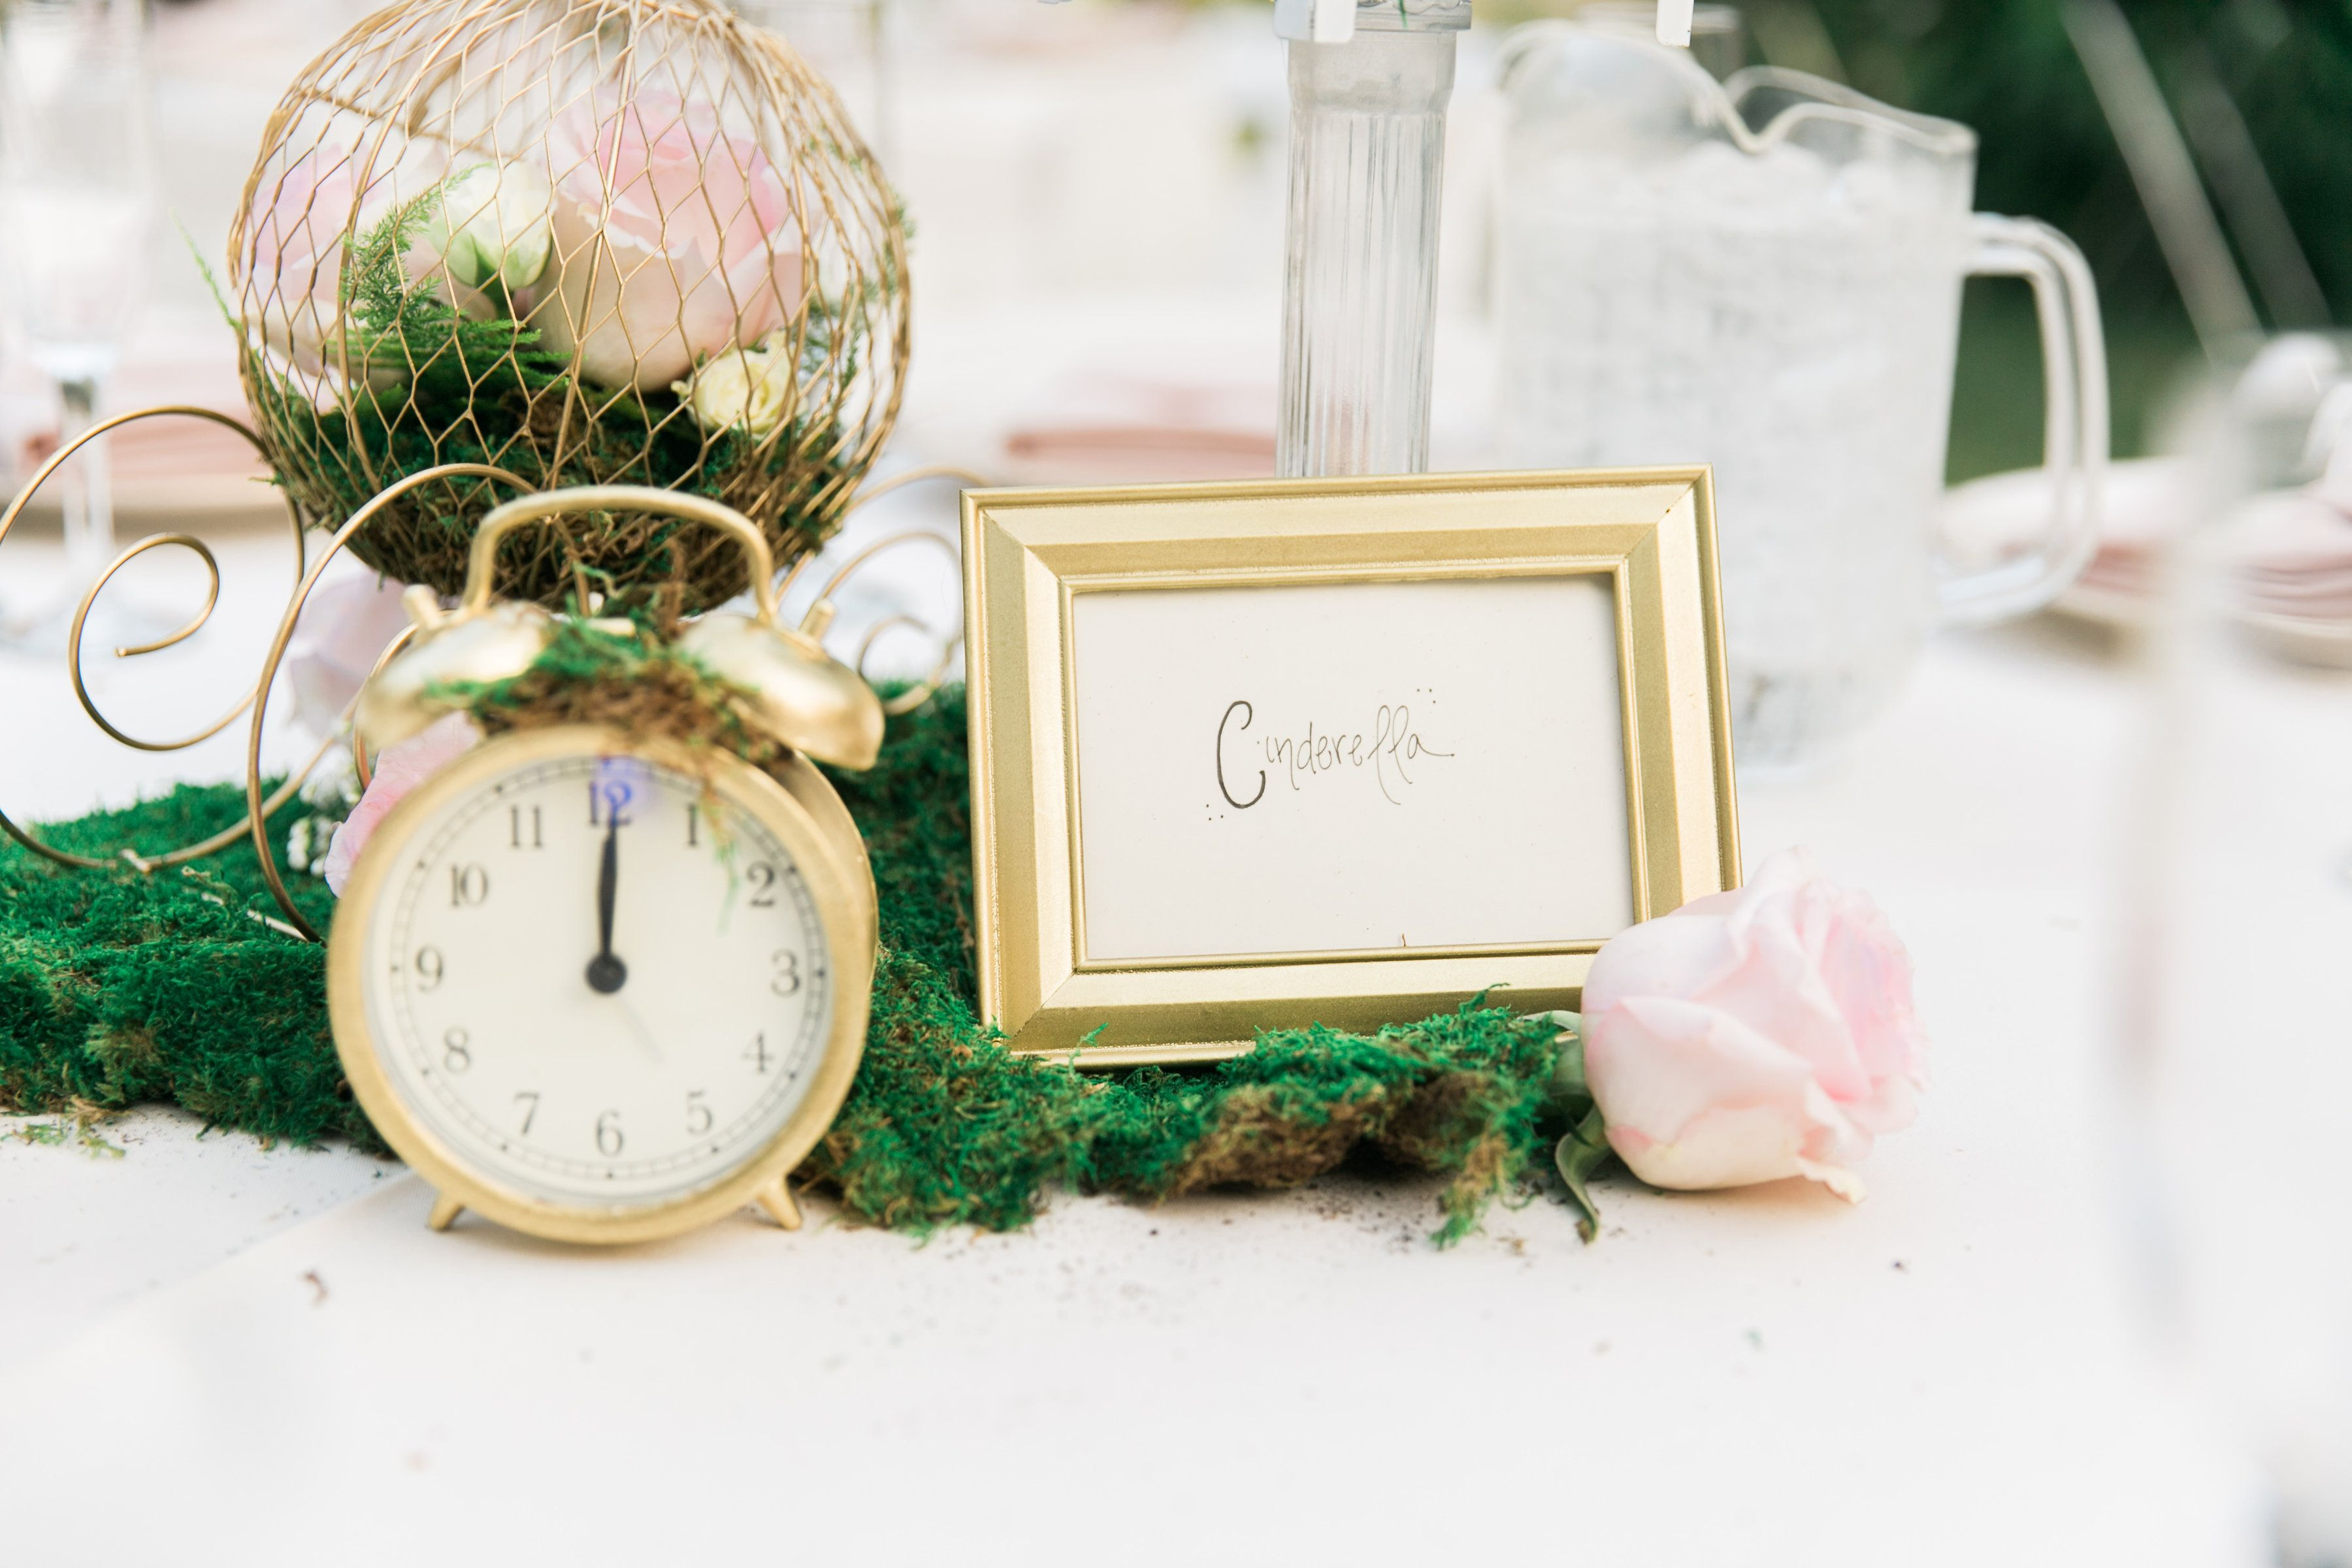 A different angle of our Disney Cinderella inspired wedding table ...